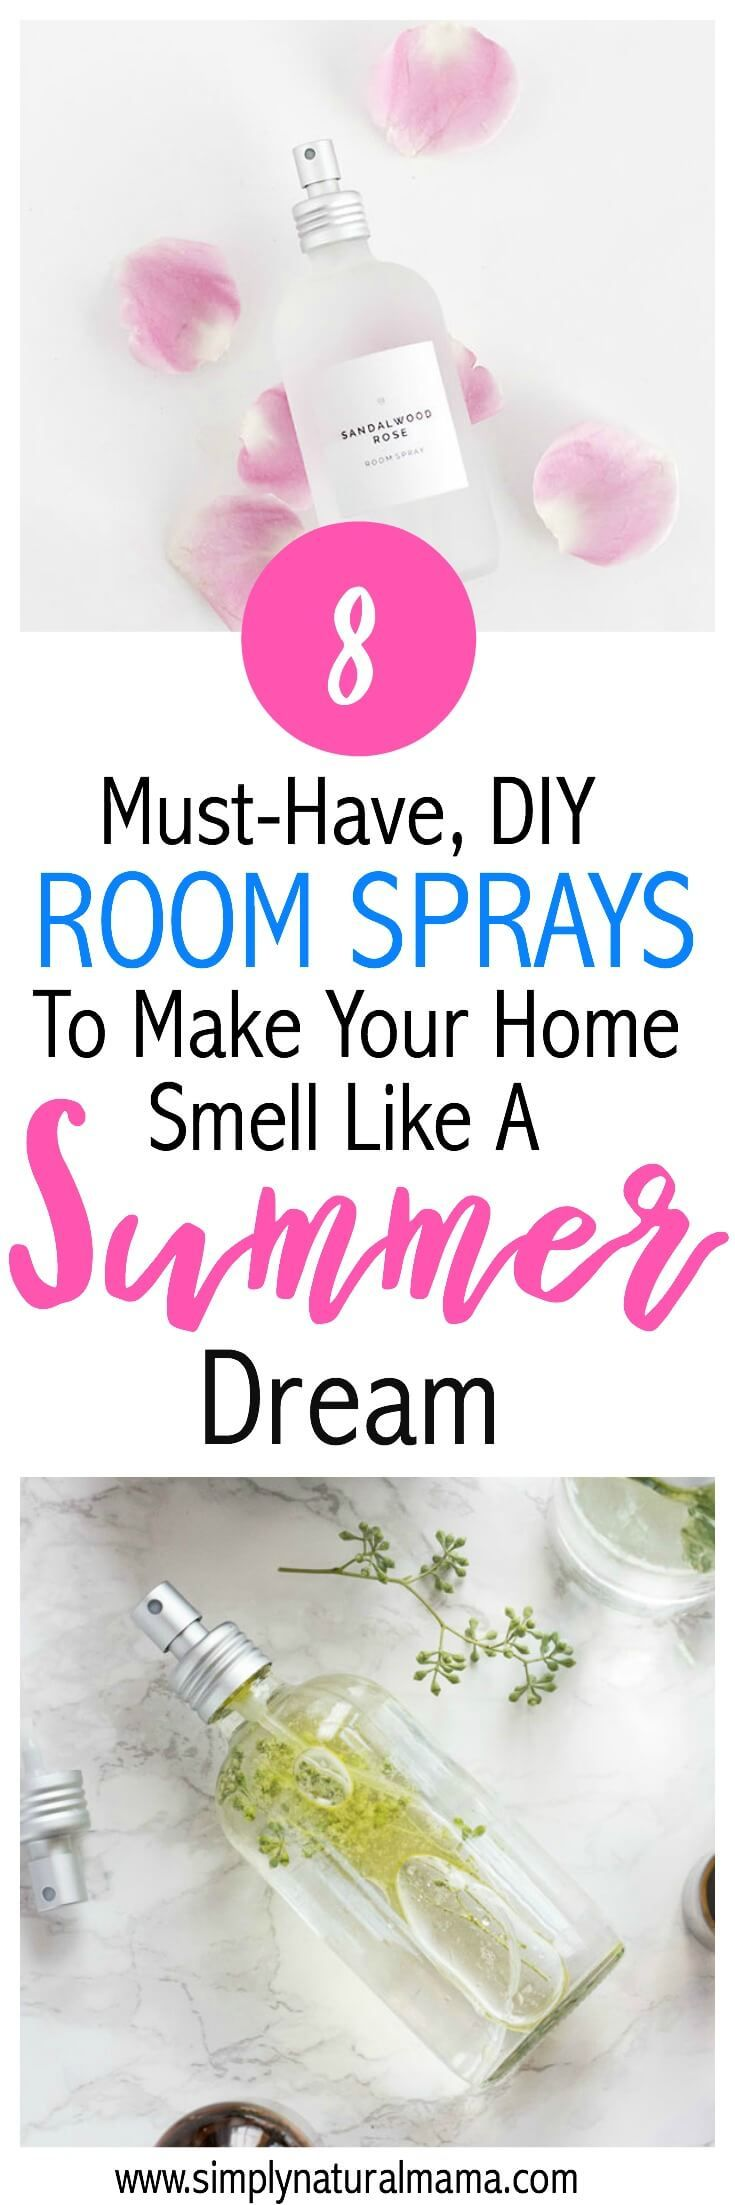 Wow!  This was an awesome list of room sprays!  I can't wait to make these this summer and have my house smell like a tropical